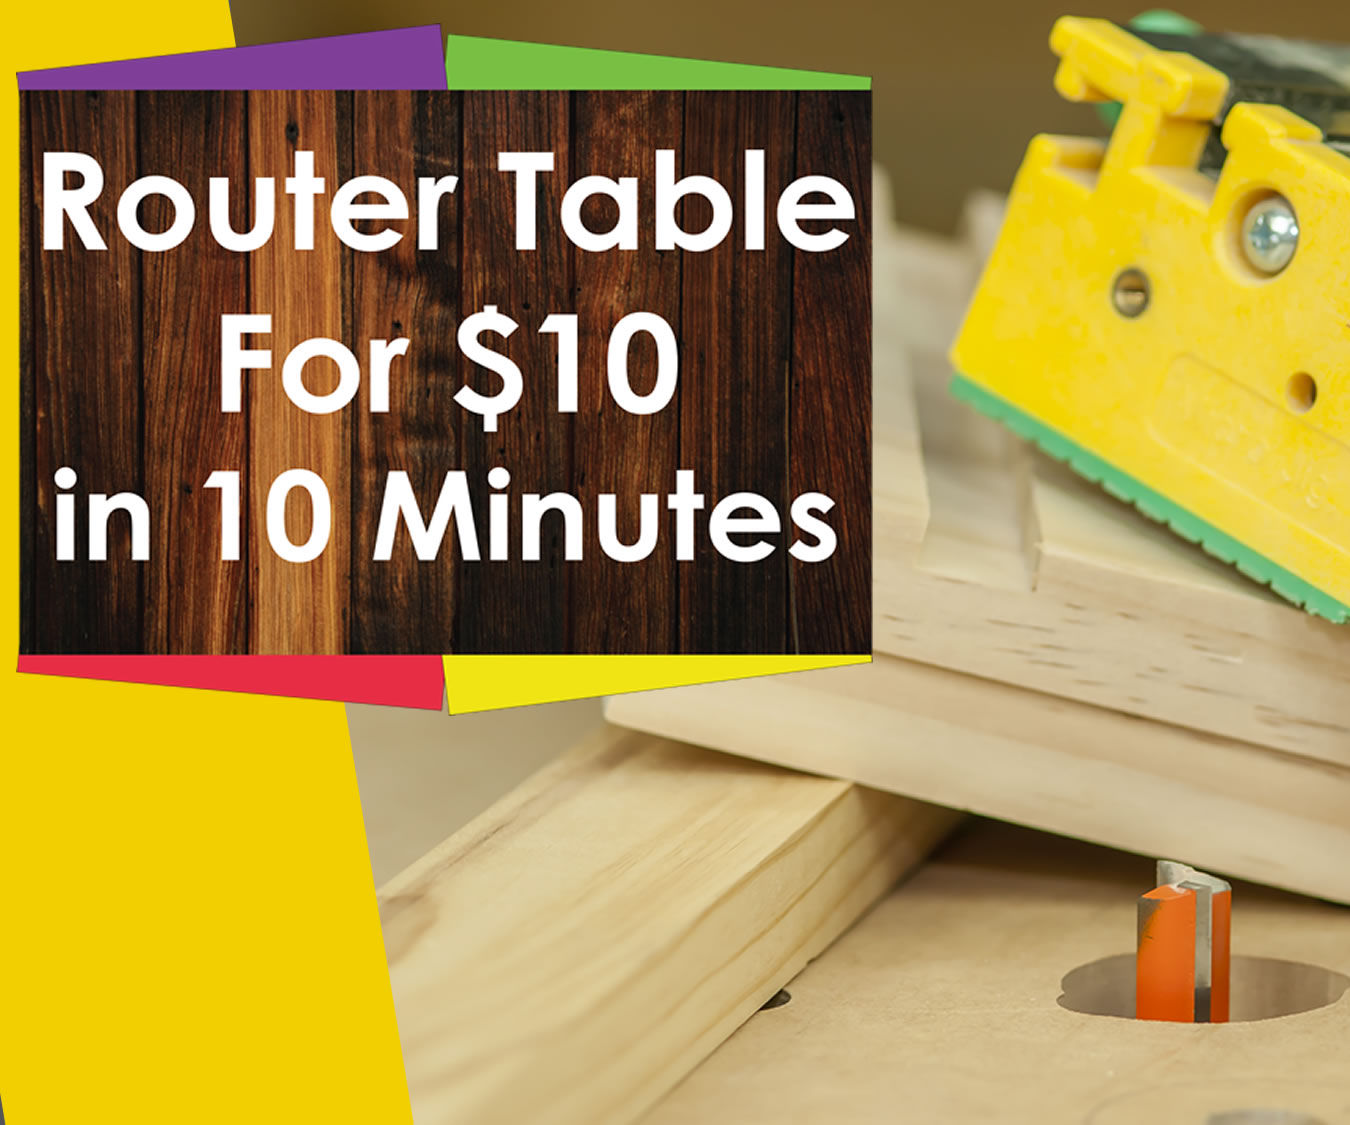 How to build a router table for Woodworking for under $10 in 10 minutes